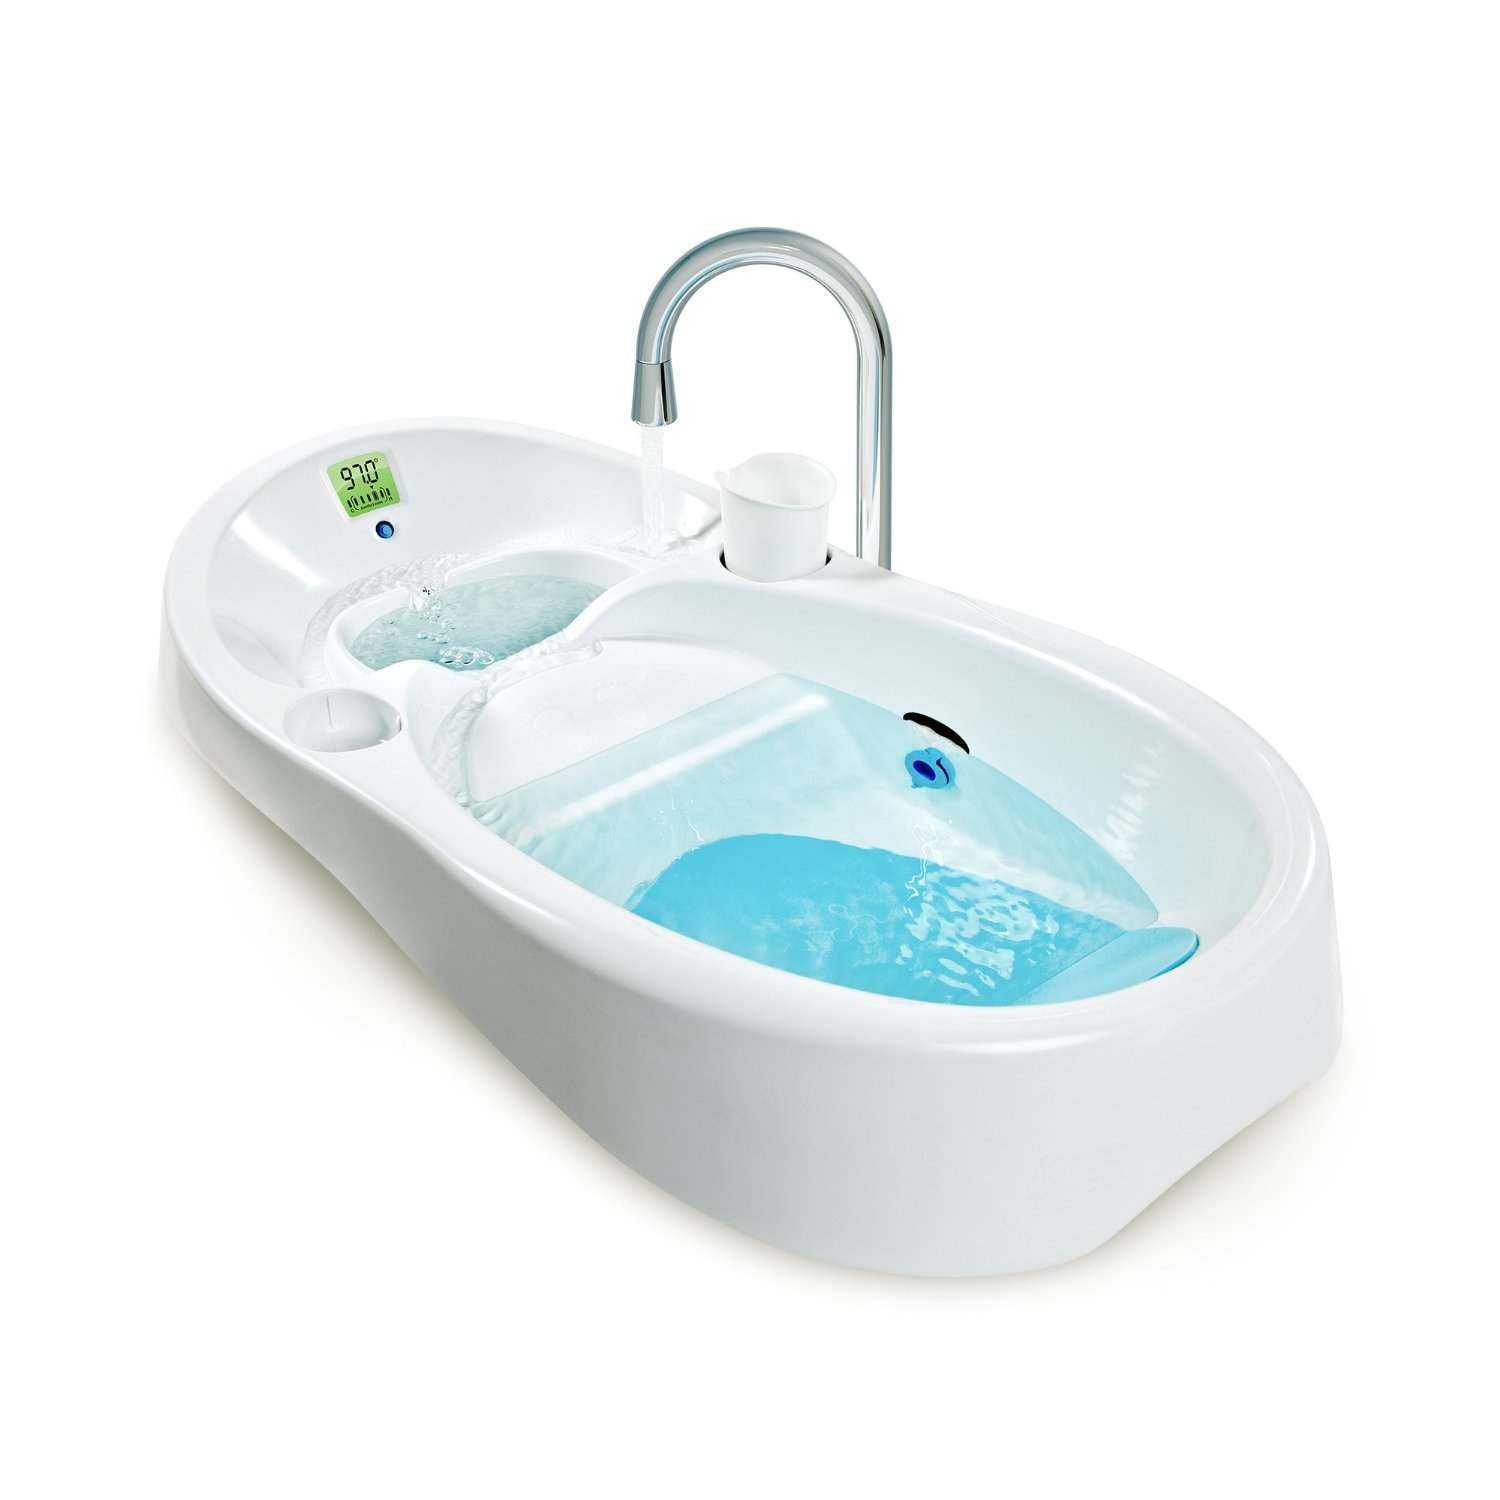 Baby Bathtub 2018 the top 8 Best Baby Bath Tubs In 2018 – Reviews and